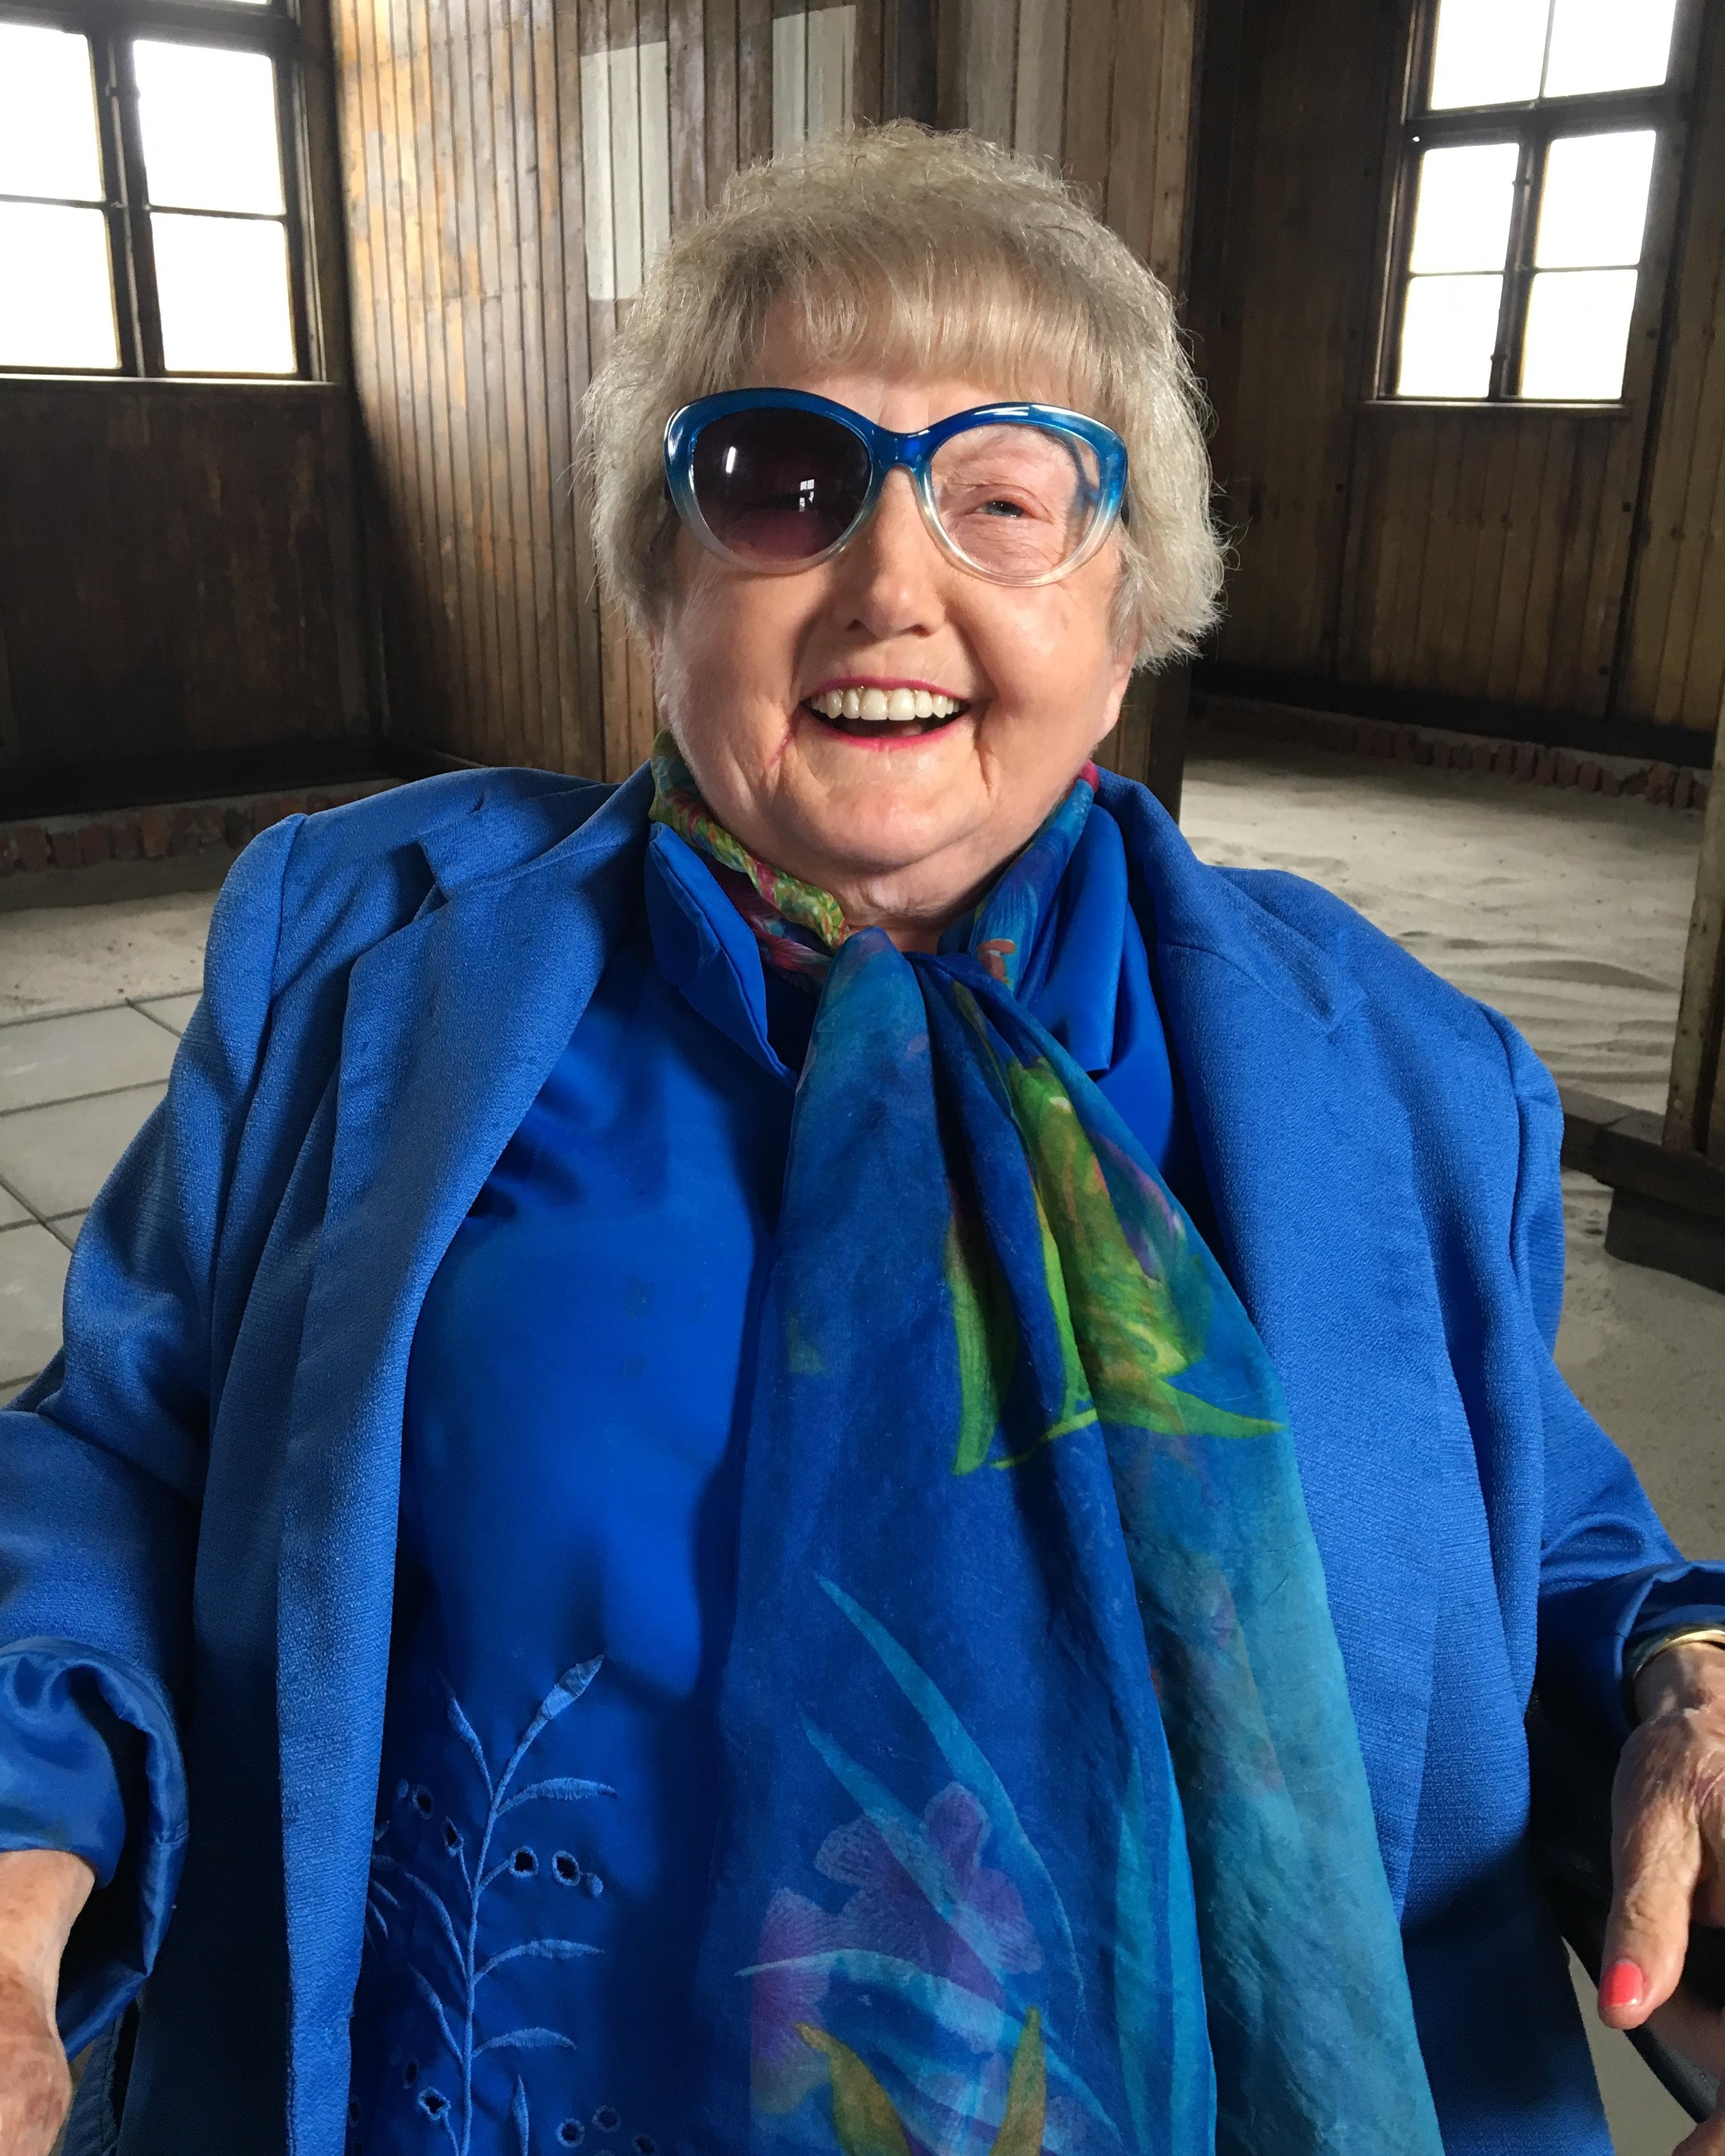 The funny side of Eva Kor - laughing after a lens dropped out of her sunglasses.